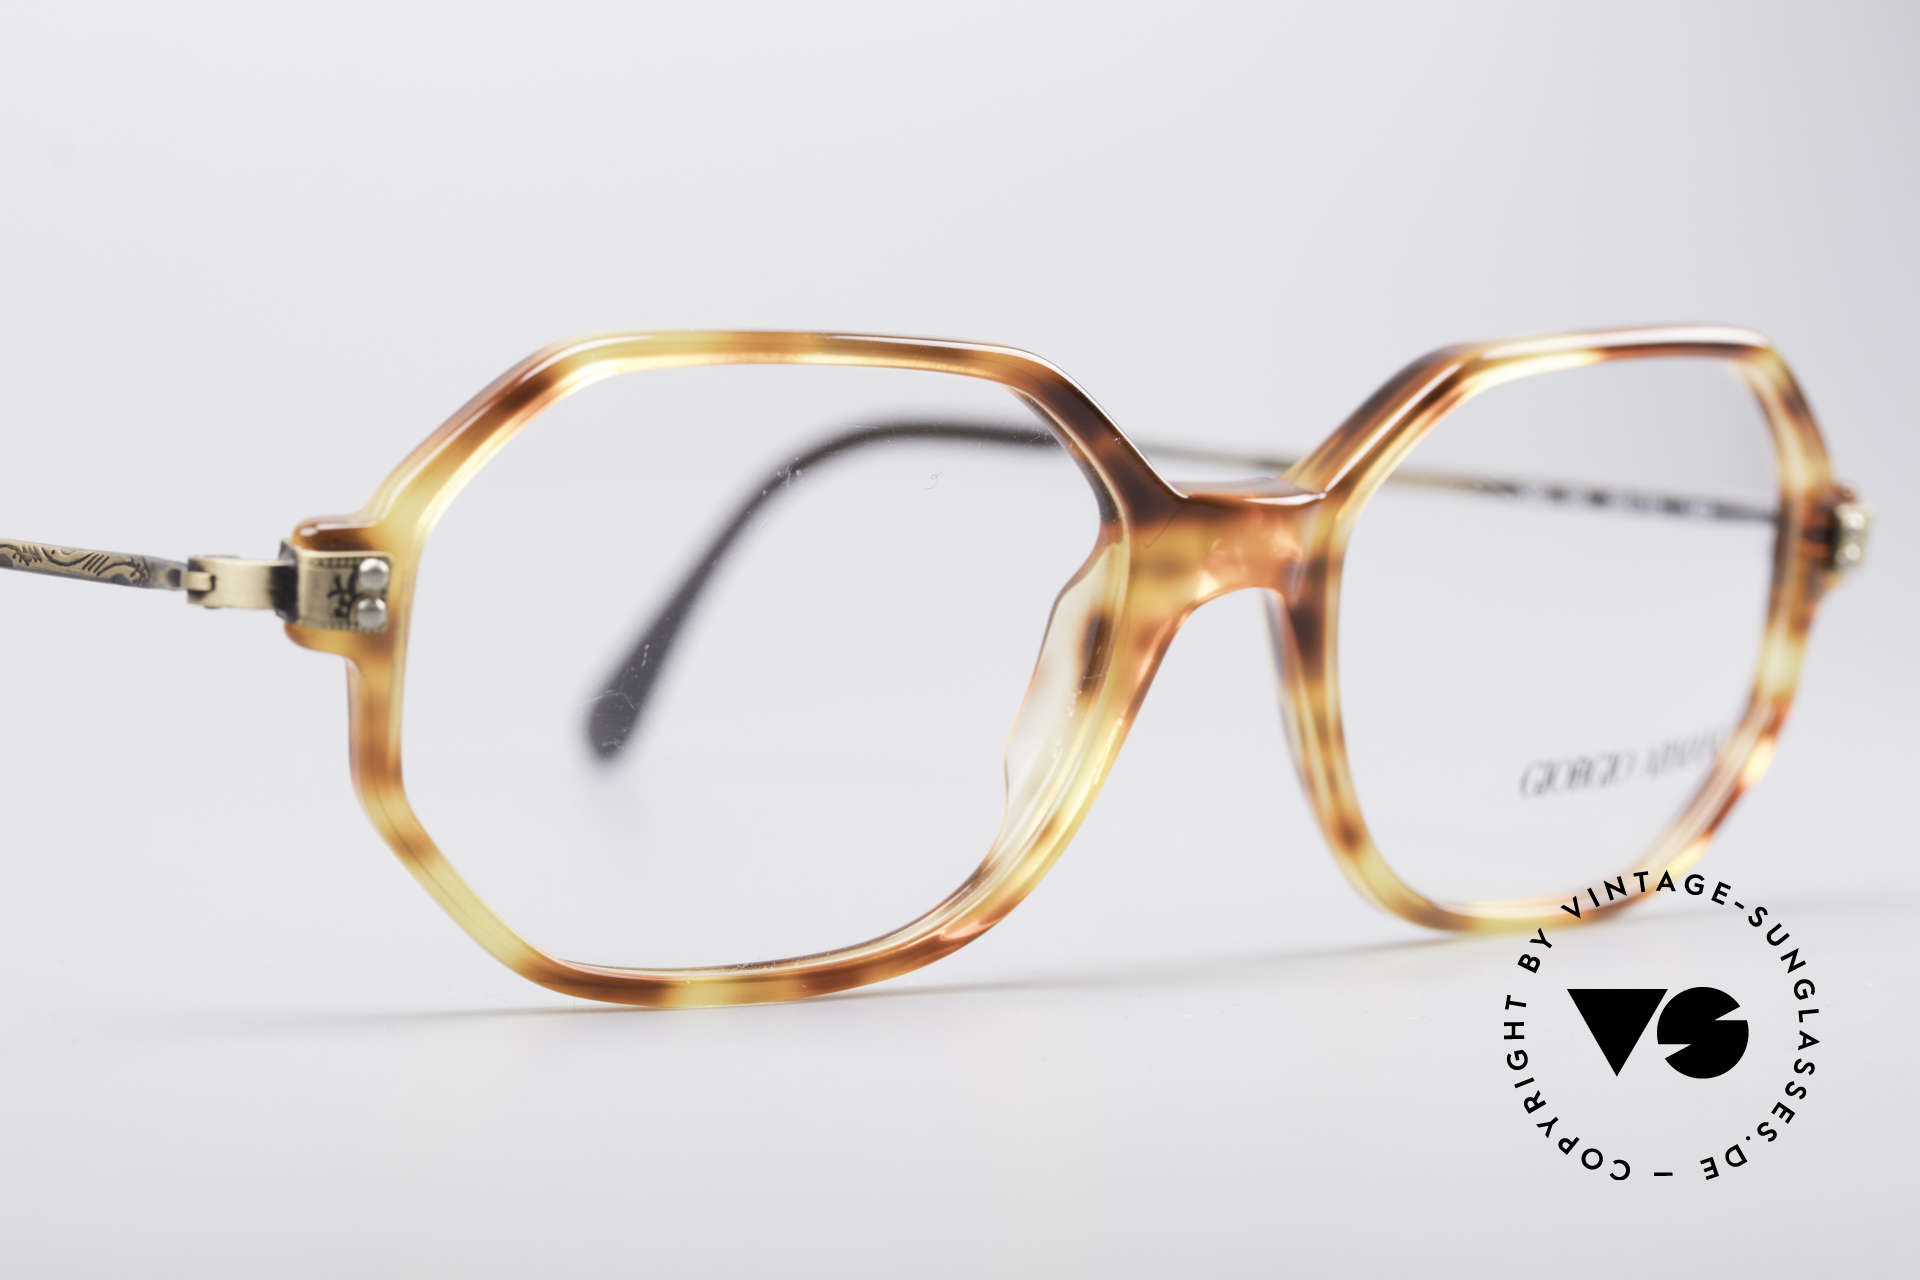 Giorgio Armani 349 No Retro Glasses Vintage Frame, NO retro specs, but an old original from 1990!, Made for Men and Women